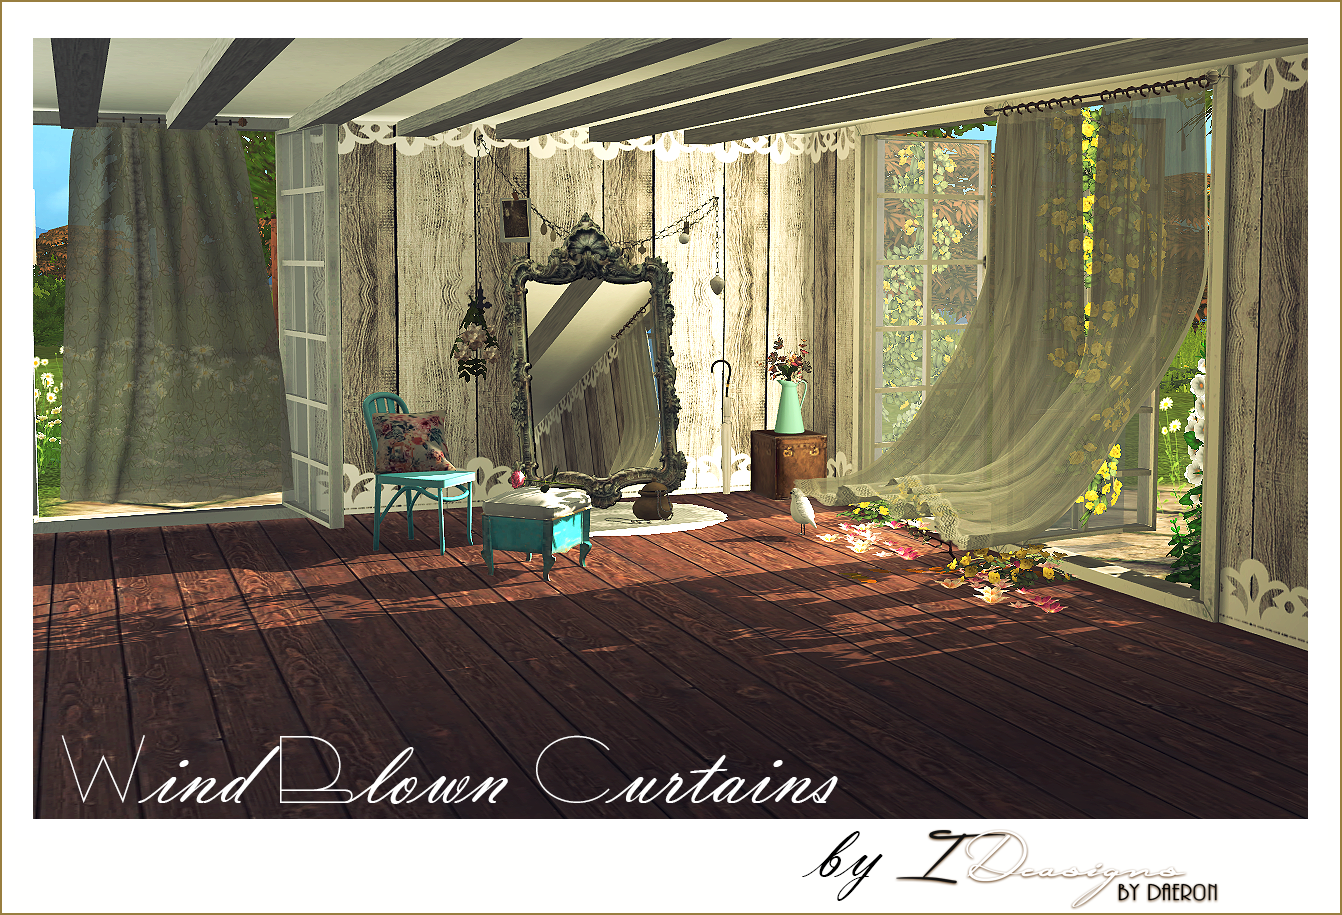 Spetses quot bedroom quot set onyx sims - Wind Blown Curtains Antique Mirrors Victorian Lace Rugs New Meshes Vol I Sims 4 Designs Sims 4 Pinterest